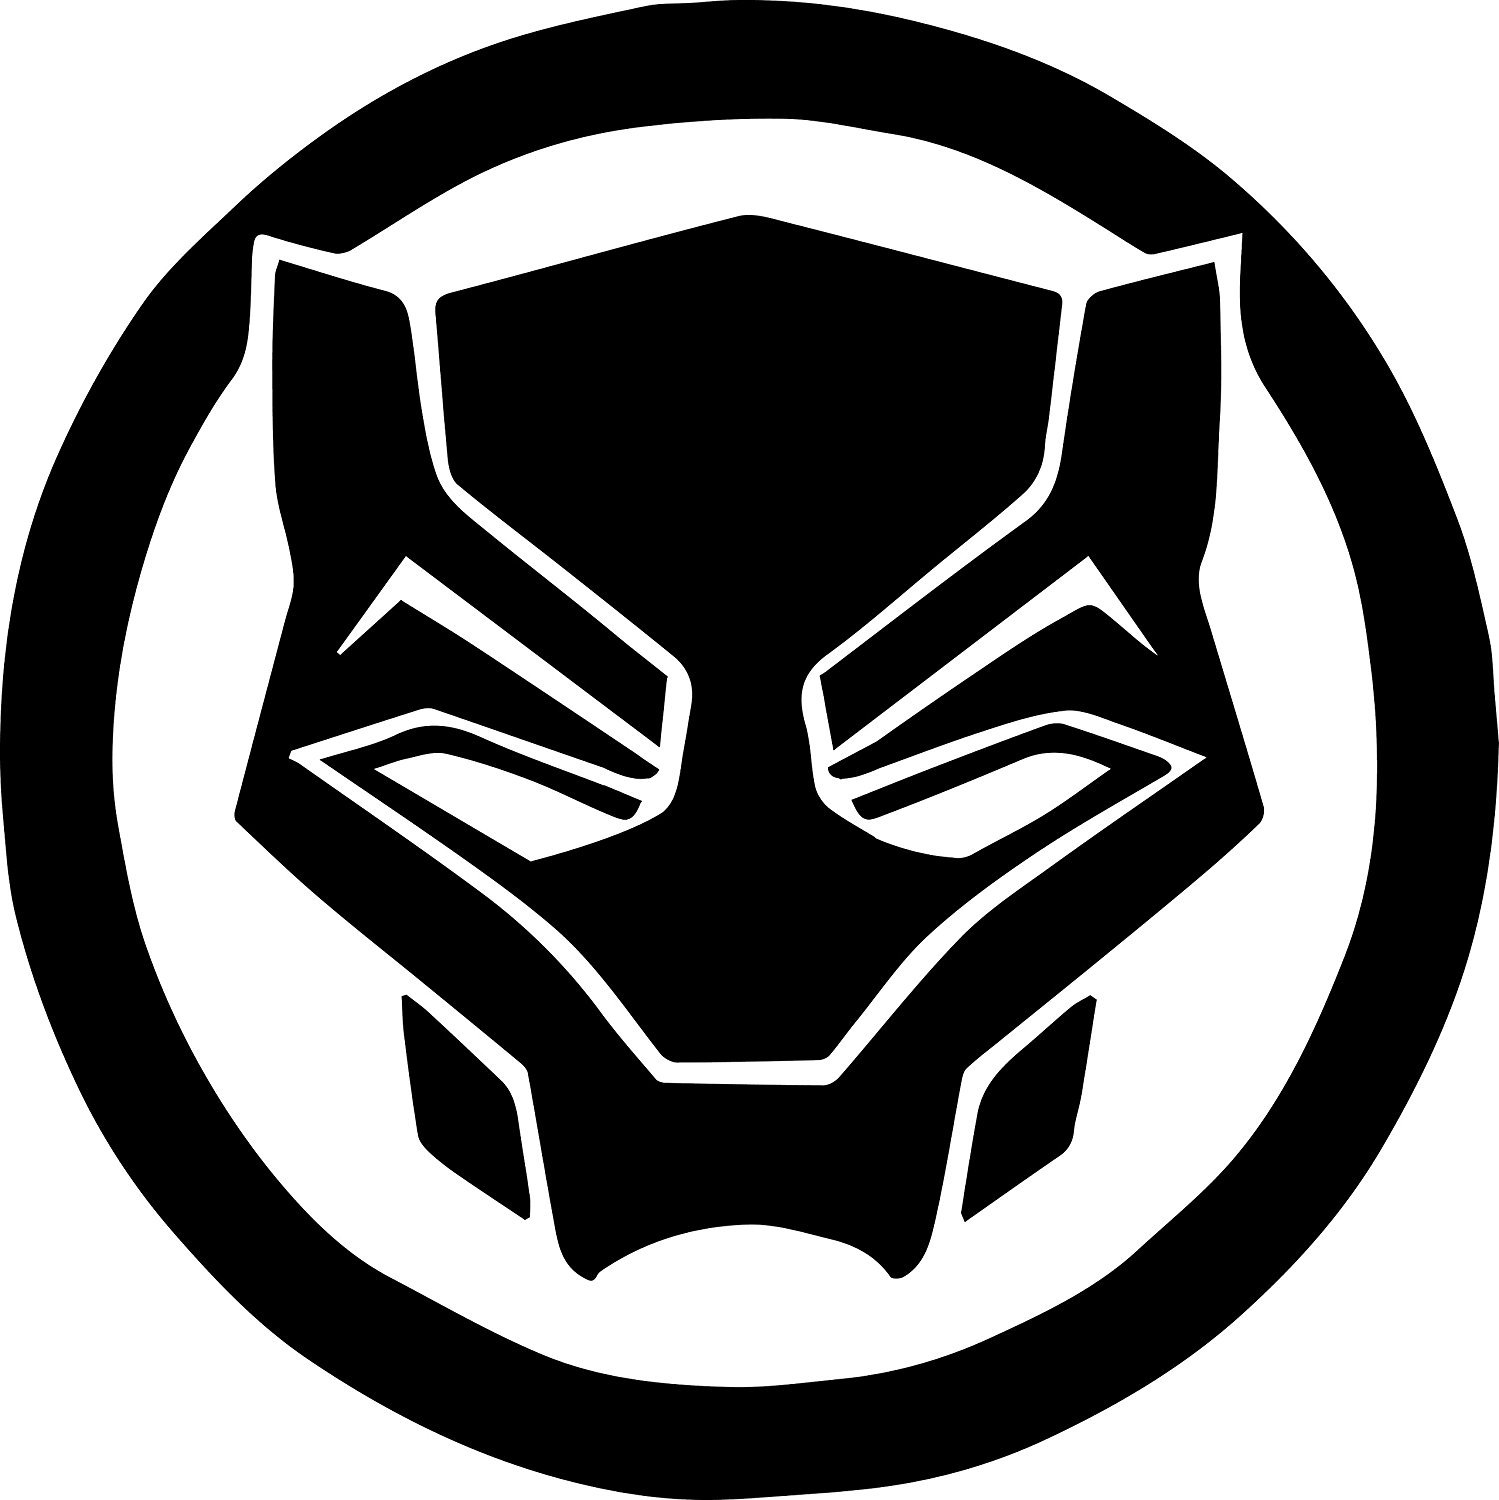 Library of avengers black panther logo image transparent ...